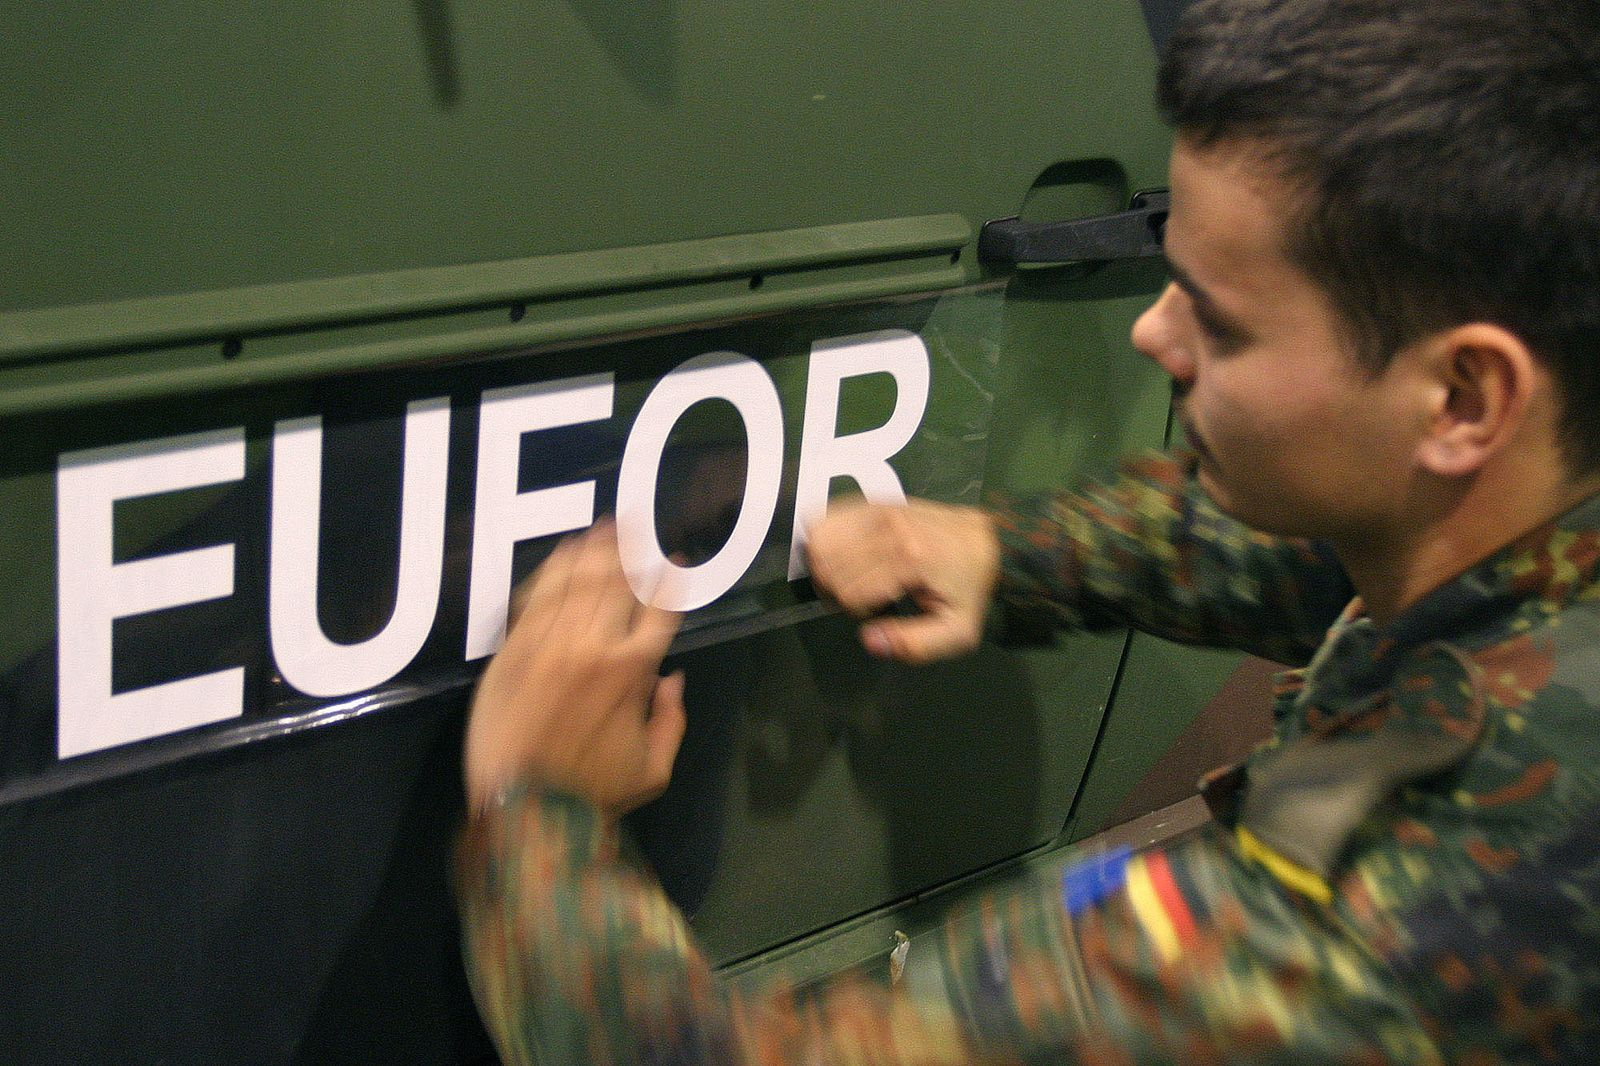 Eufor Friedensmission Bosnien